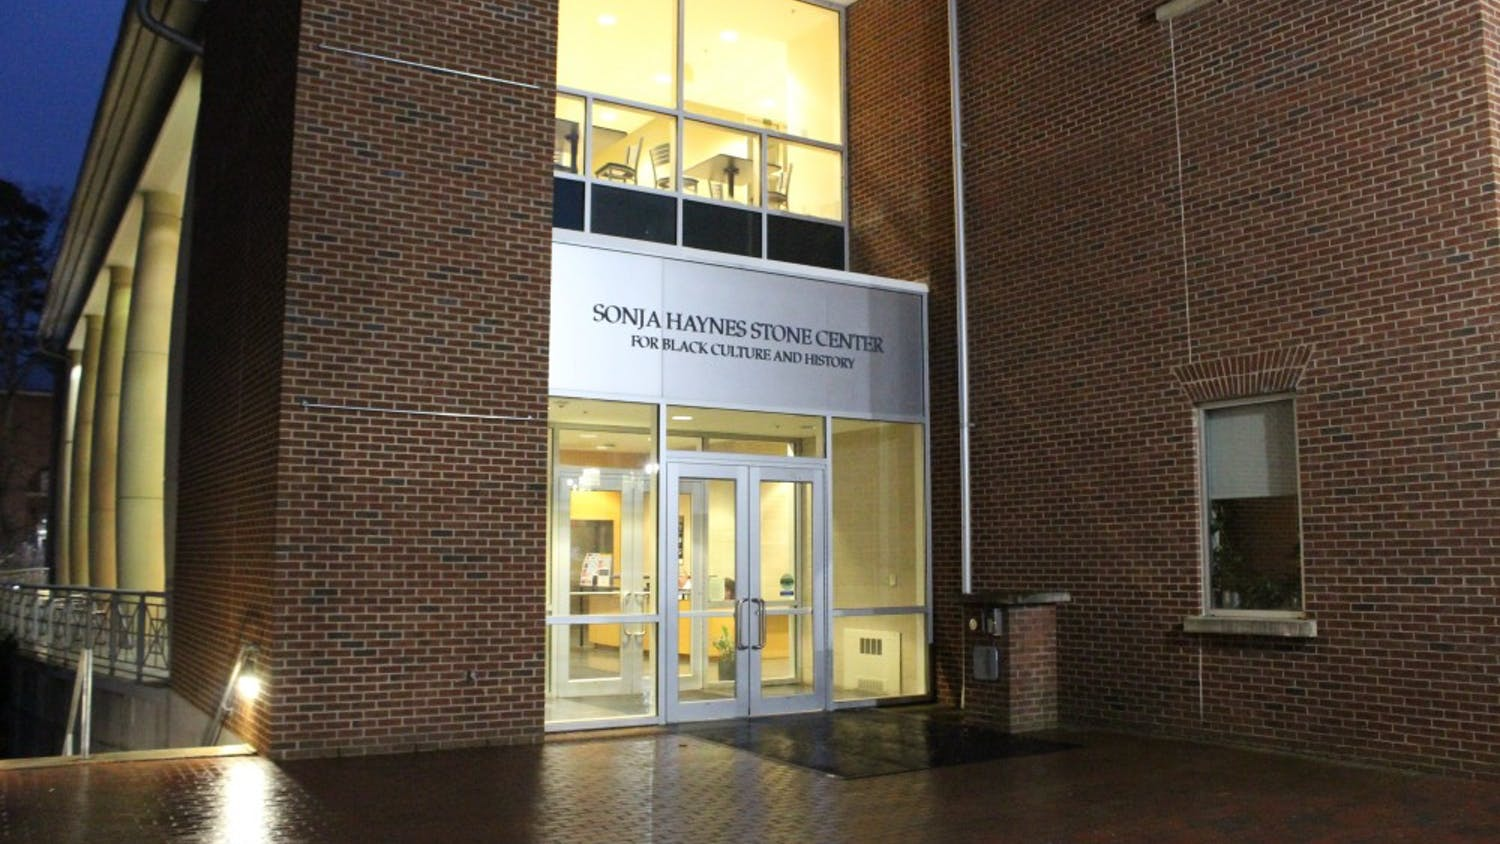 The Sonja Haynes Stone Center for Black Culture and History on Thursday, Jan. 17. Artist Charles Williams will have a new exhibit in the center this spring.